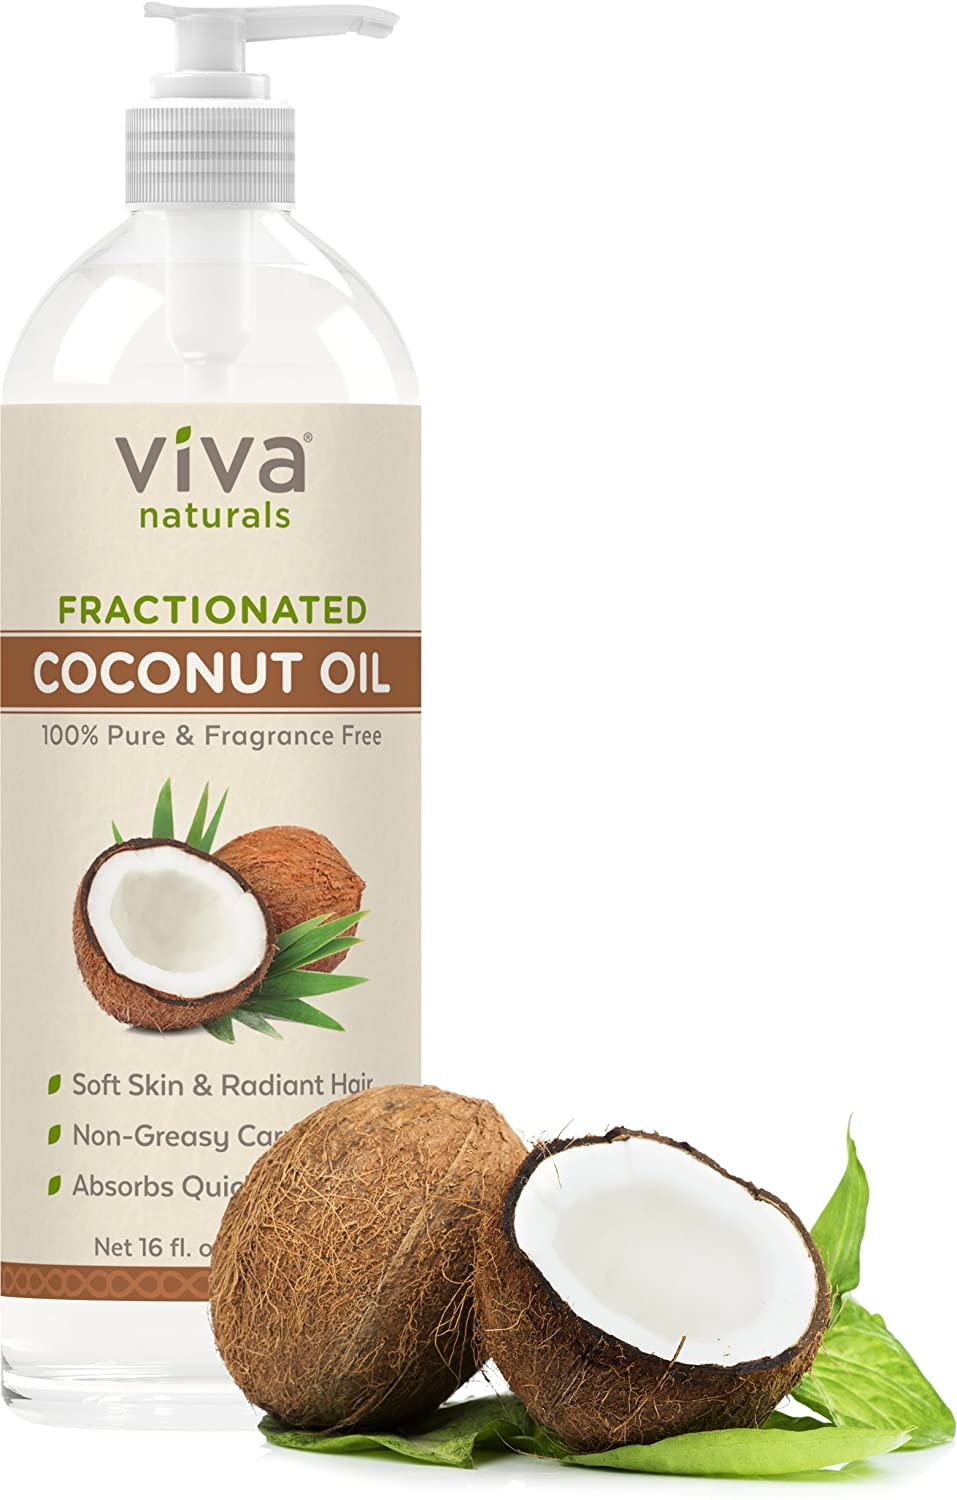 Viva Naturals Fractionated Coconut Oil, 16 oz